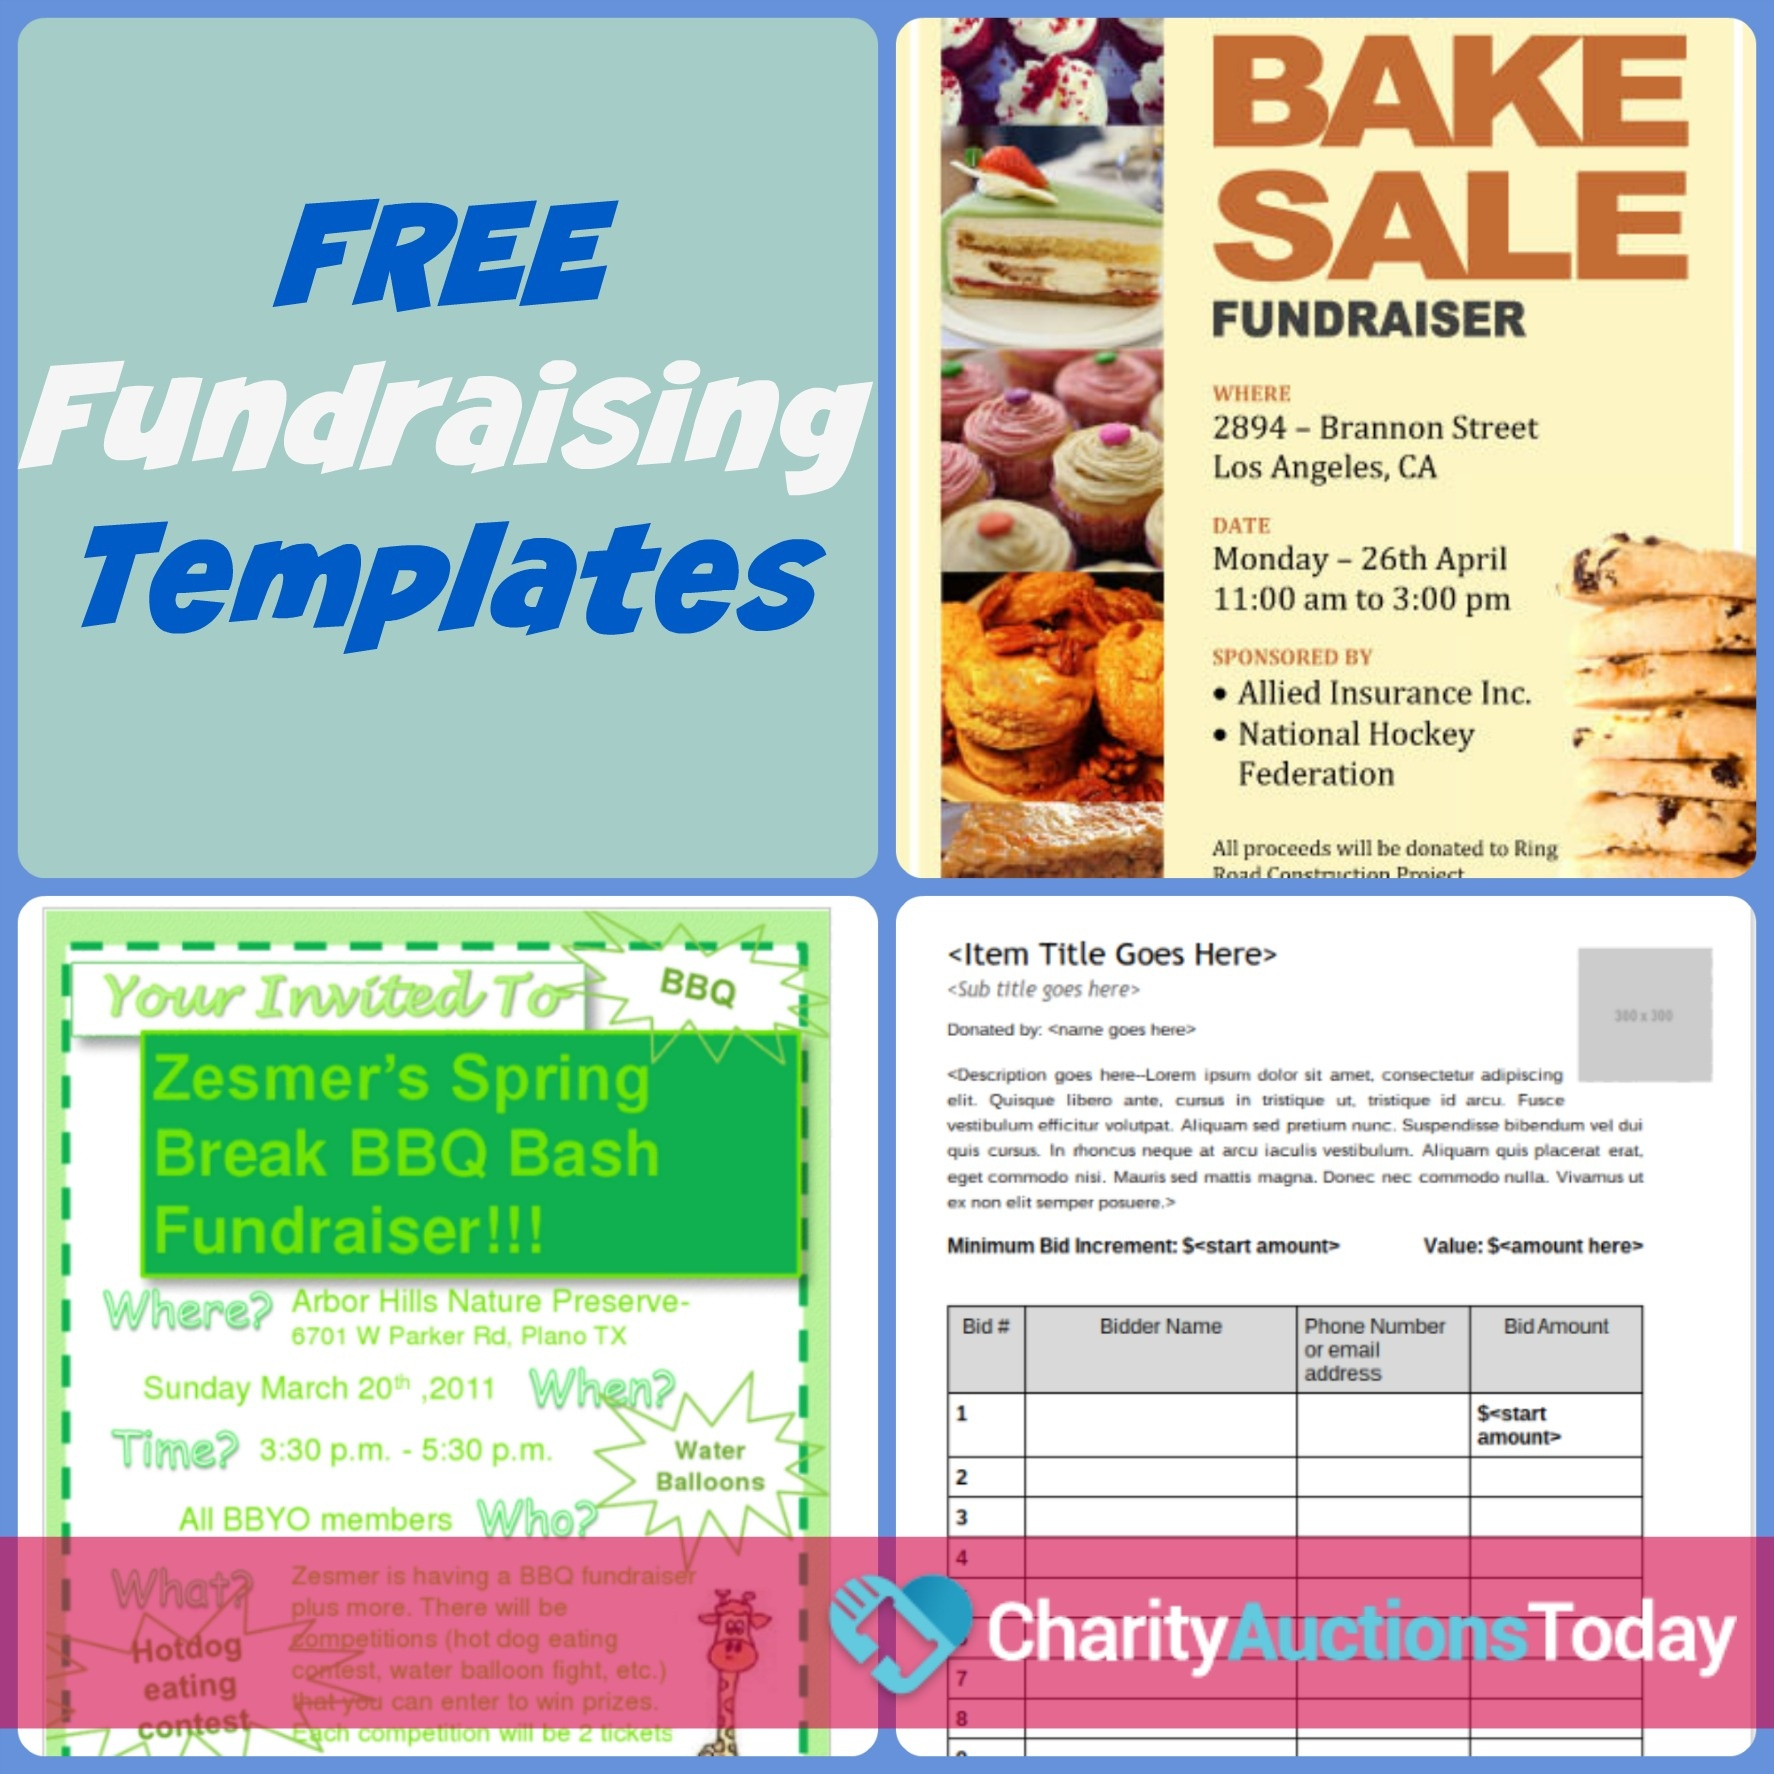 Free Fundraiser Flyer   Charity Auctions Today - Free Printable Flyers